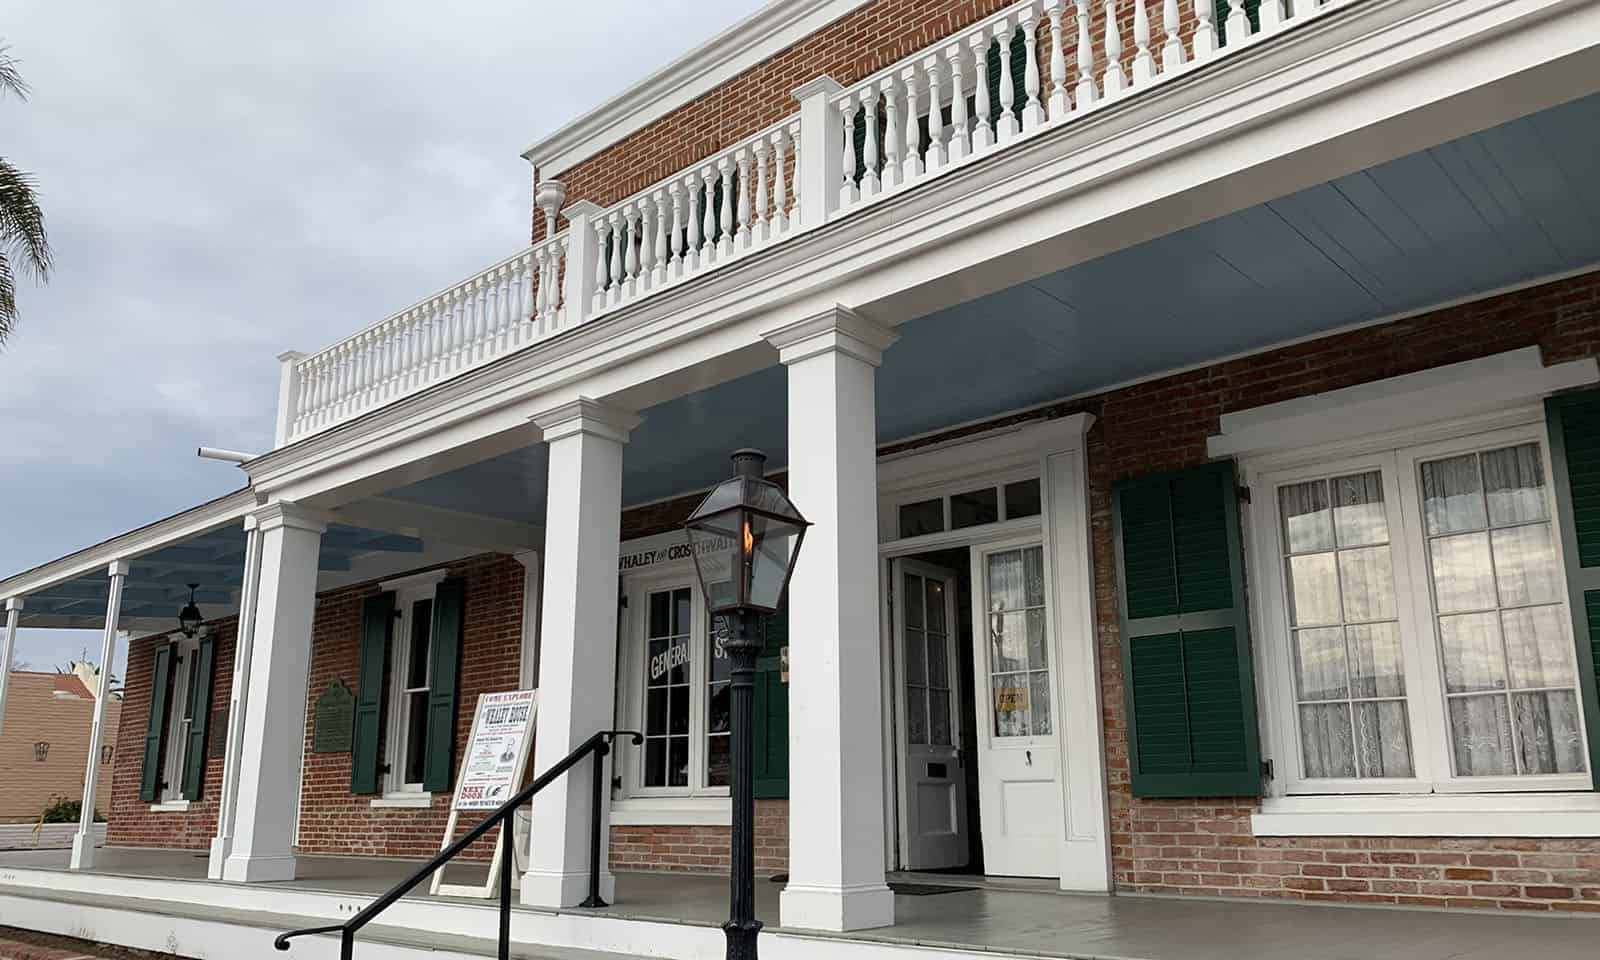 historic-whaley-house-interview-americas-most-haunted-house-dean-glass-malorie-mackey-main-image